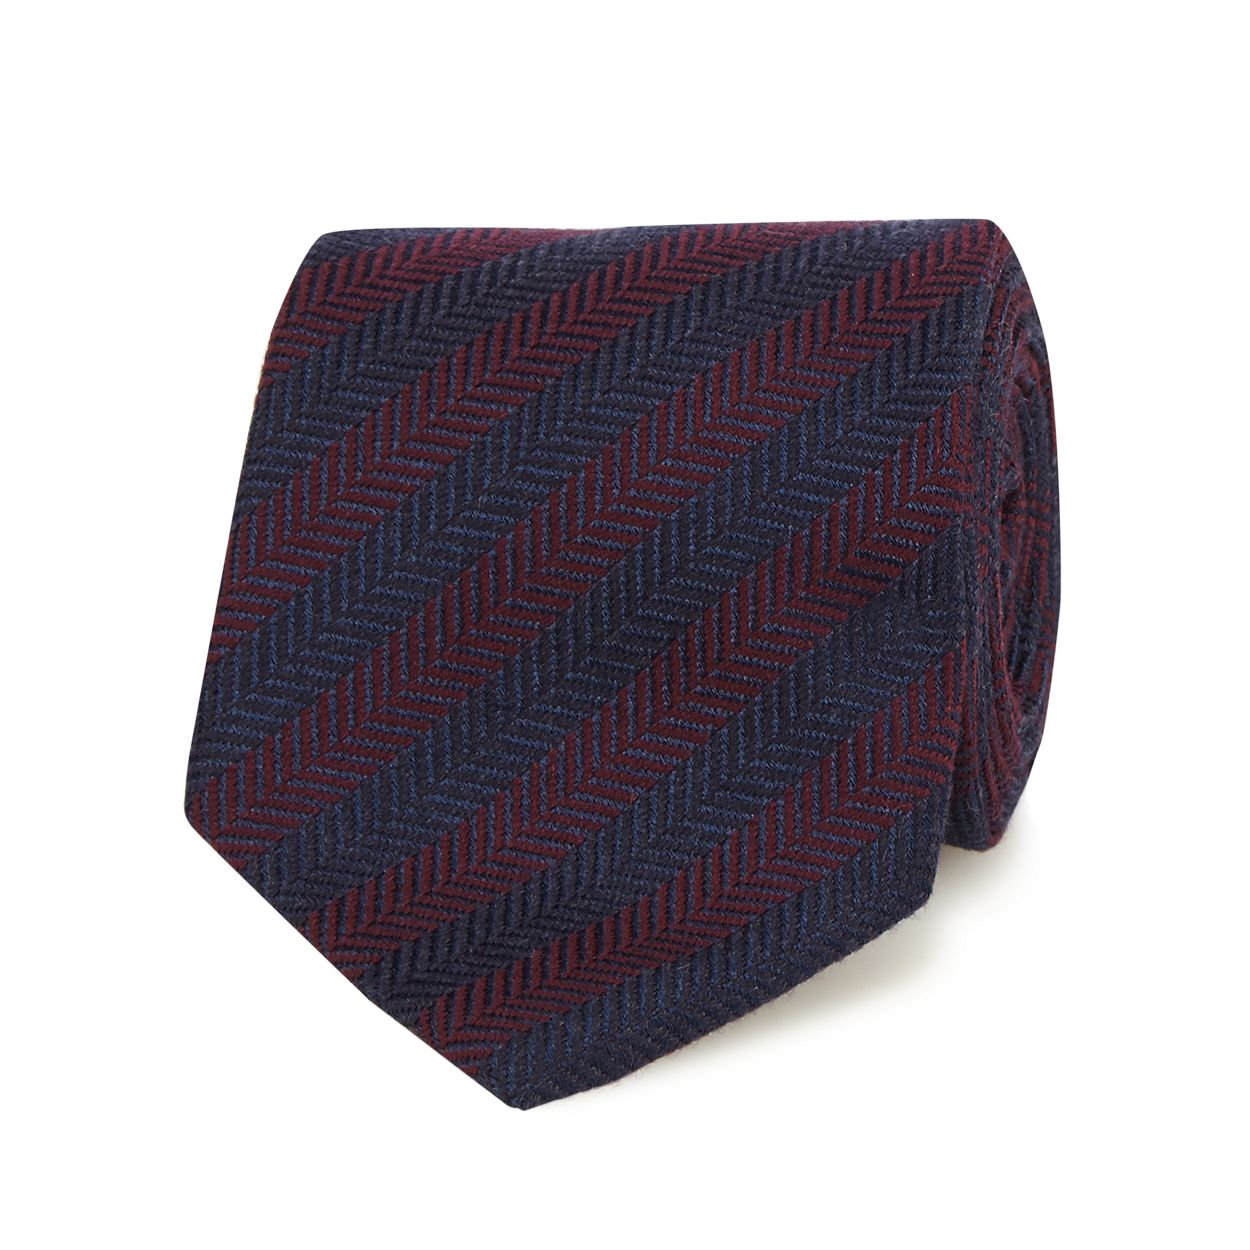 Hammond & Co. by Patrick Grant Wine Dark red chevron patterned tie with wool